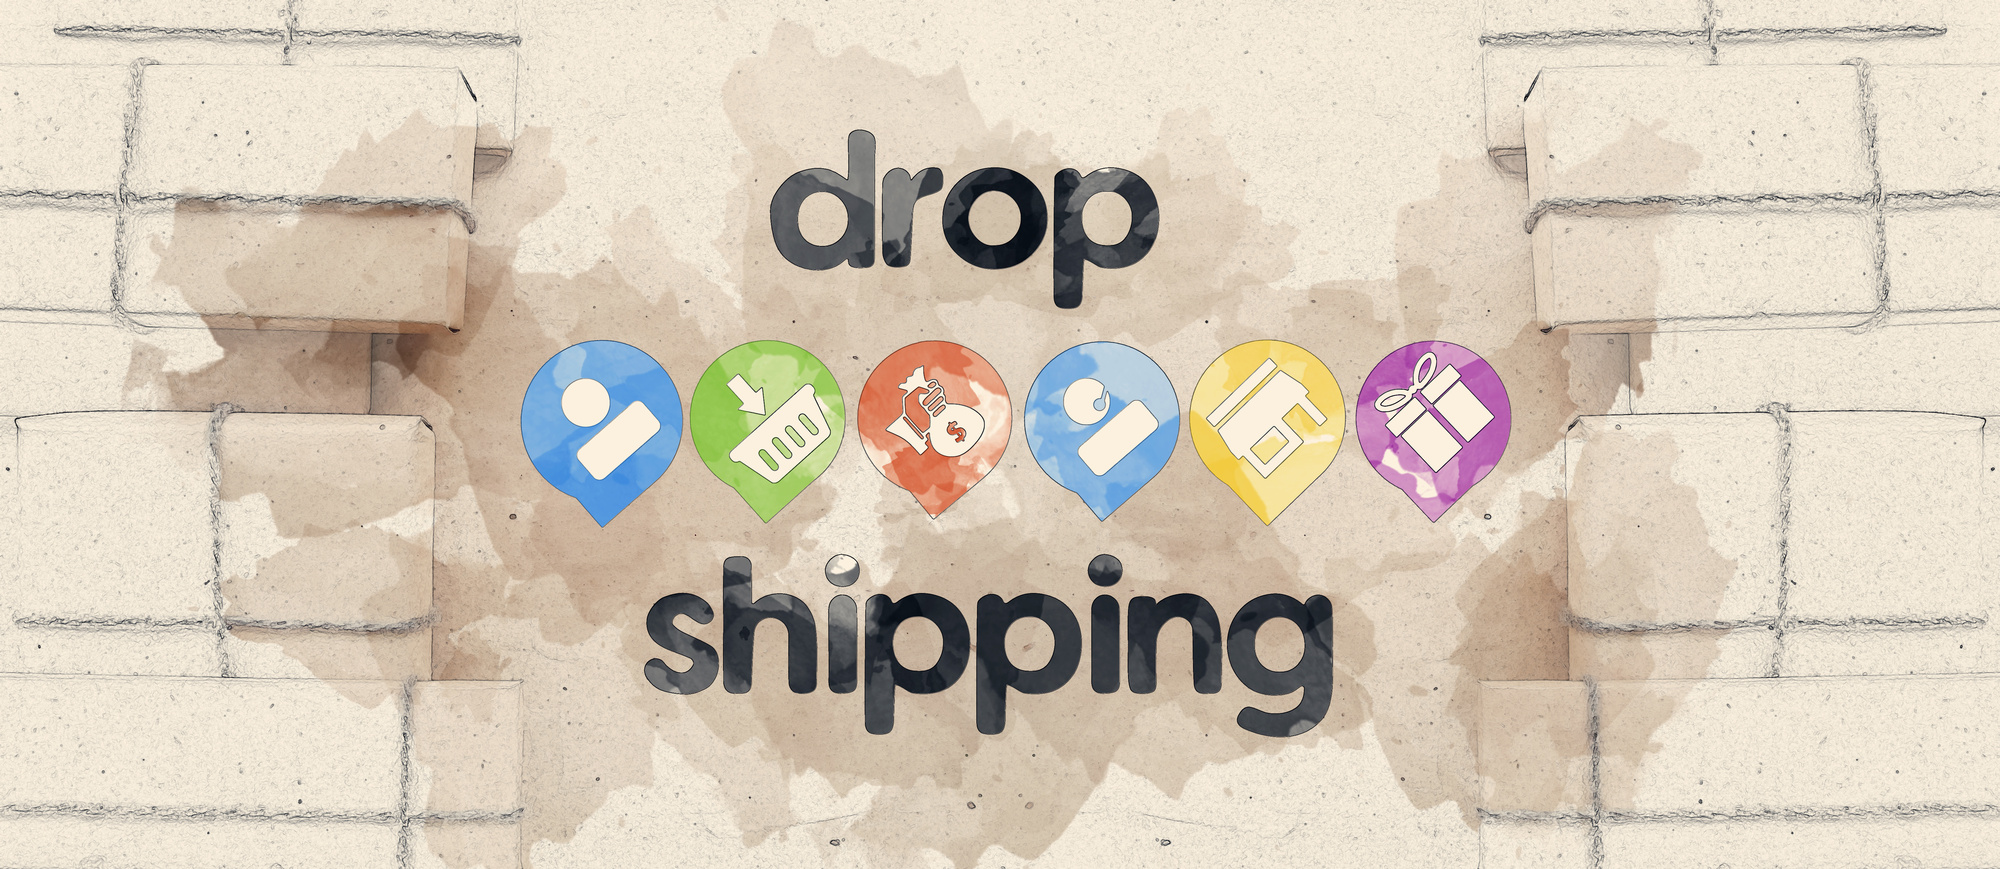 answer-dropshipping-products-black-friday